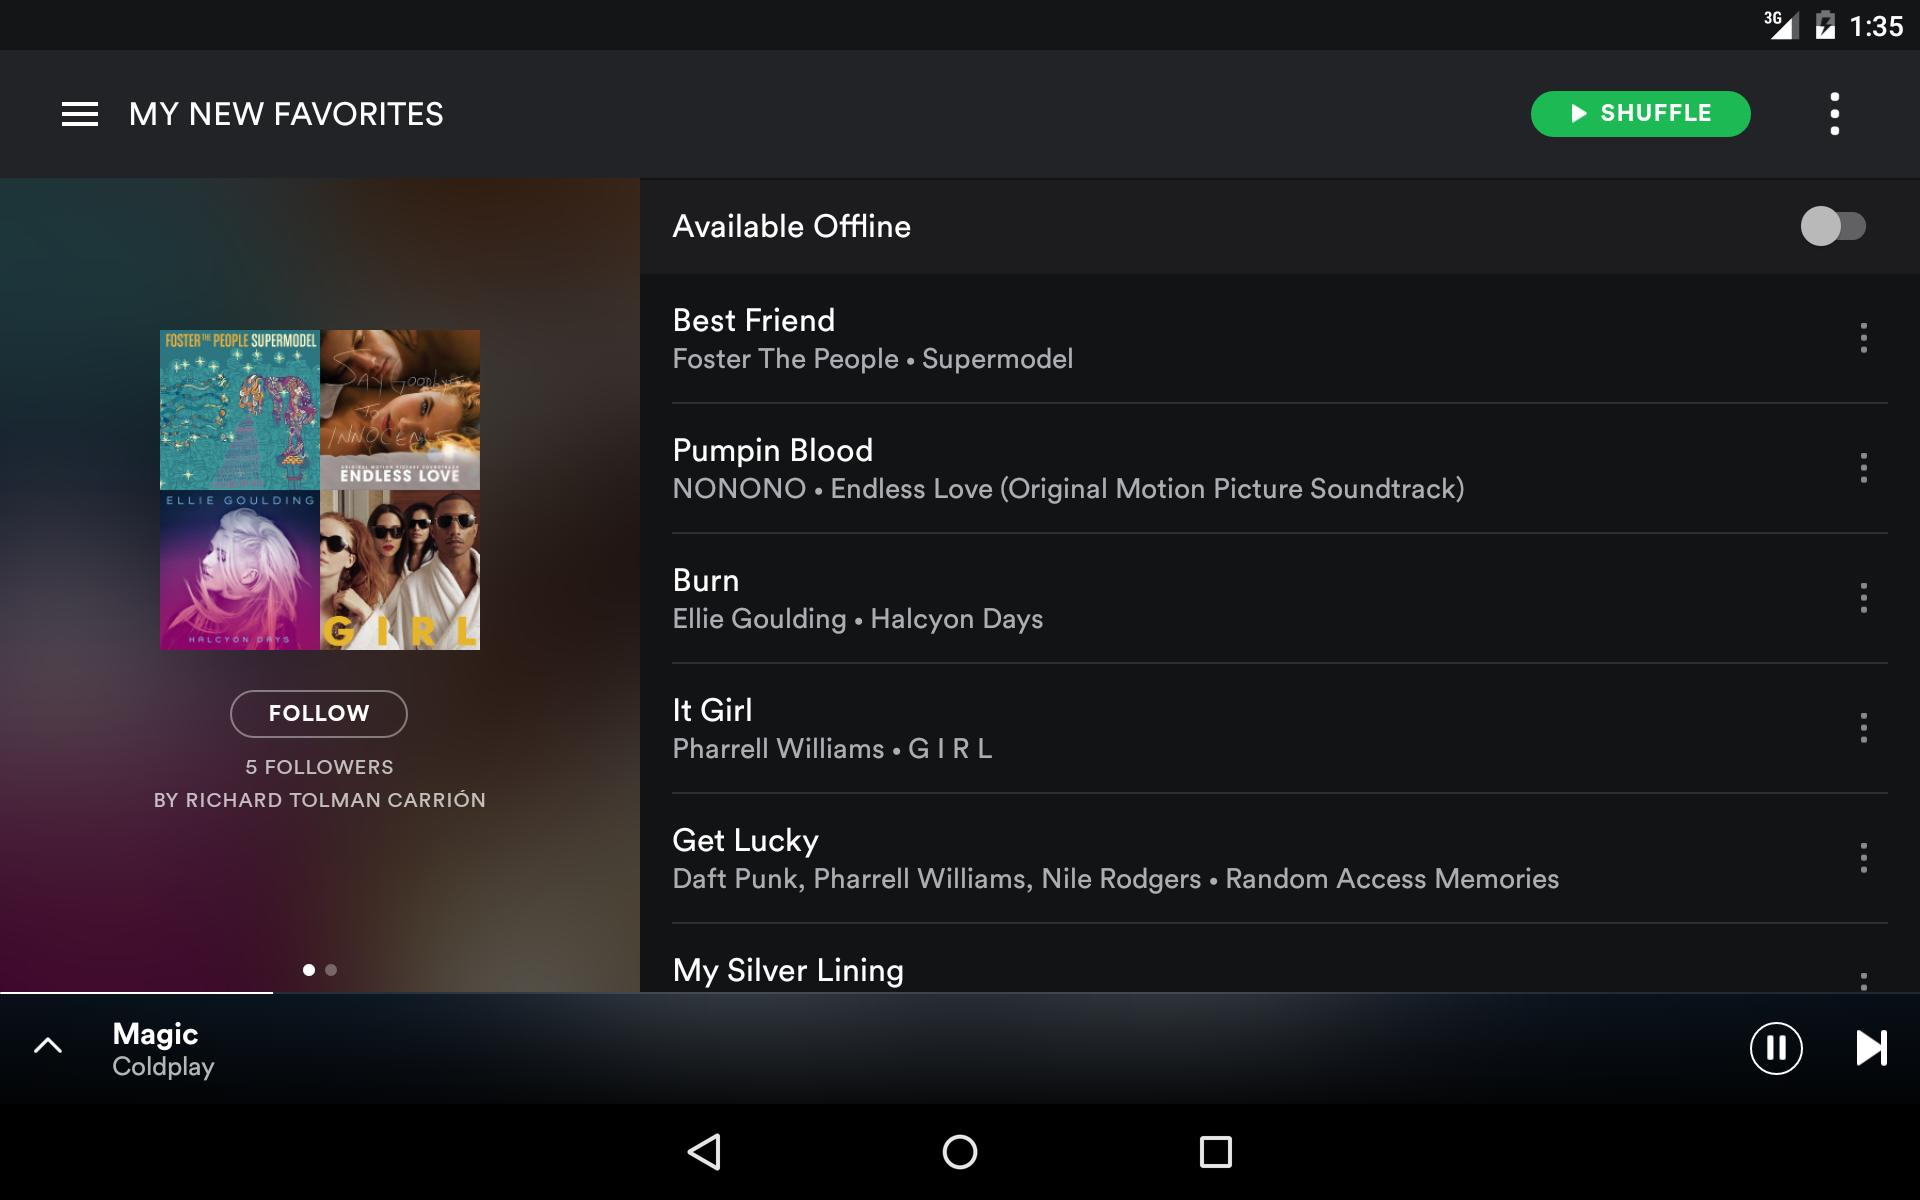 Spotify download app for Android - eenternet